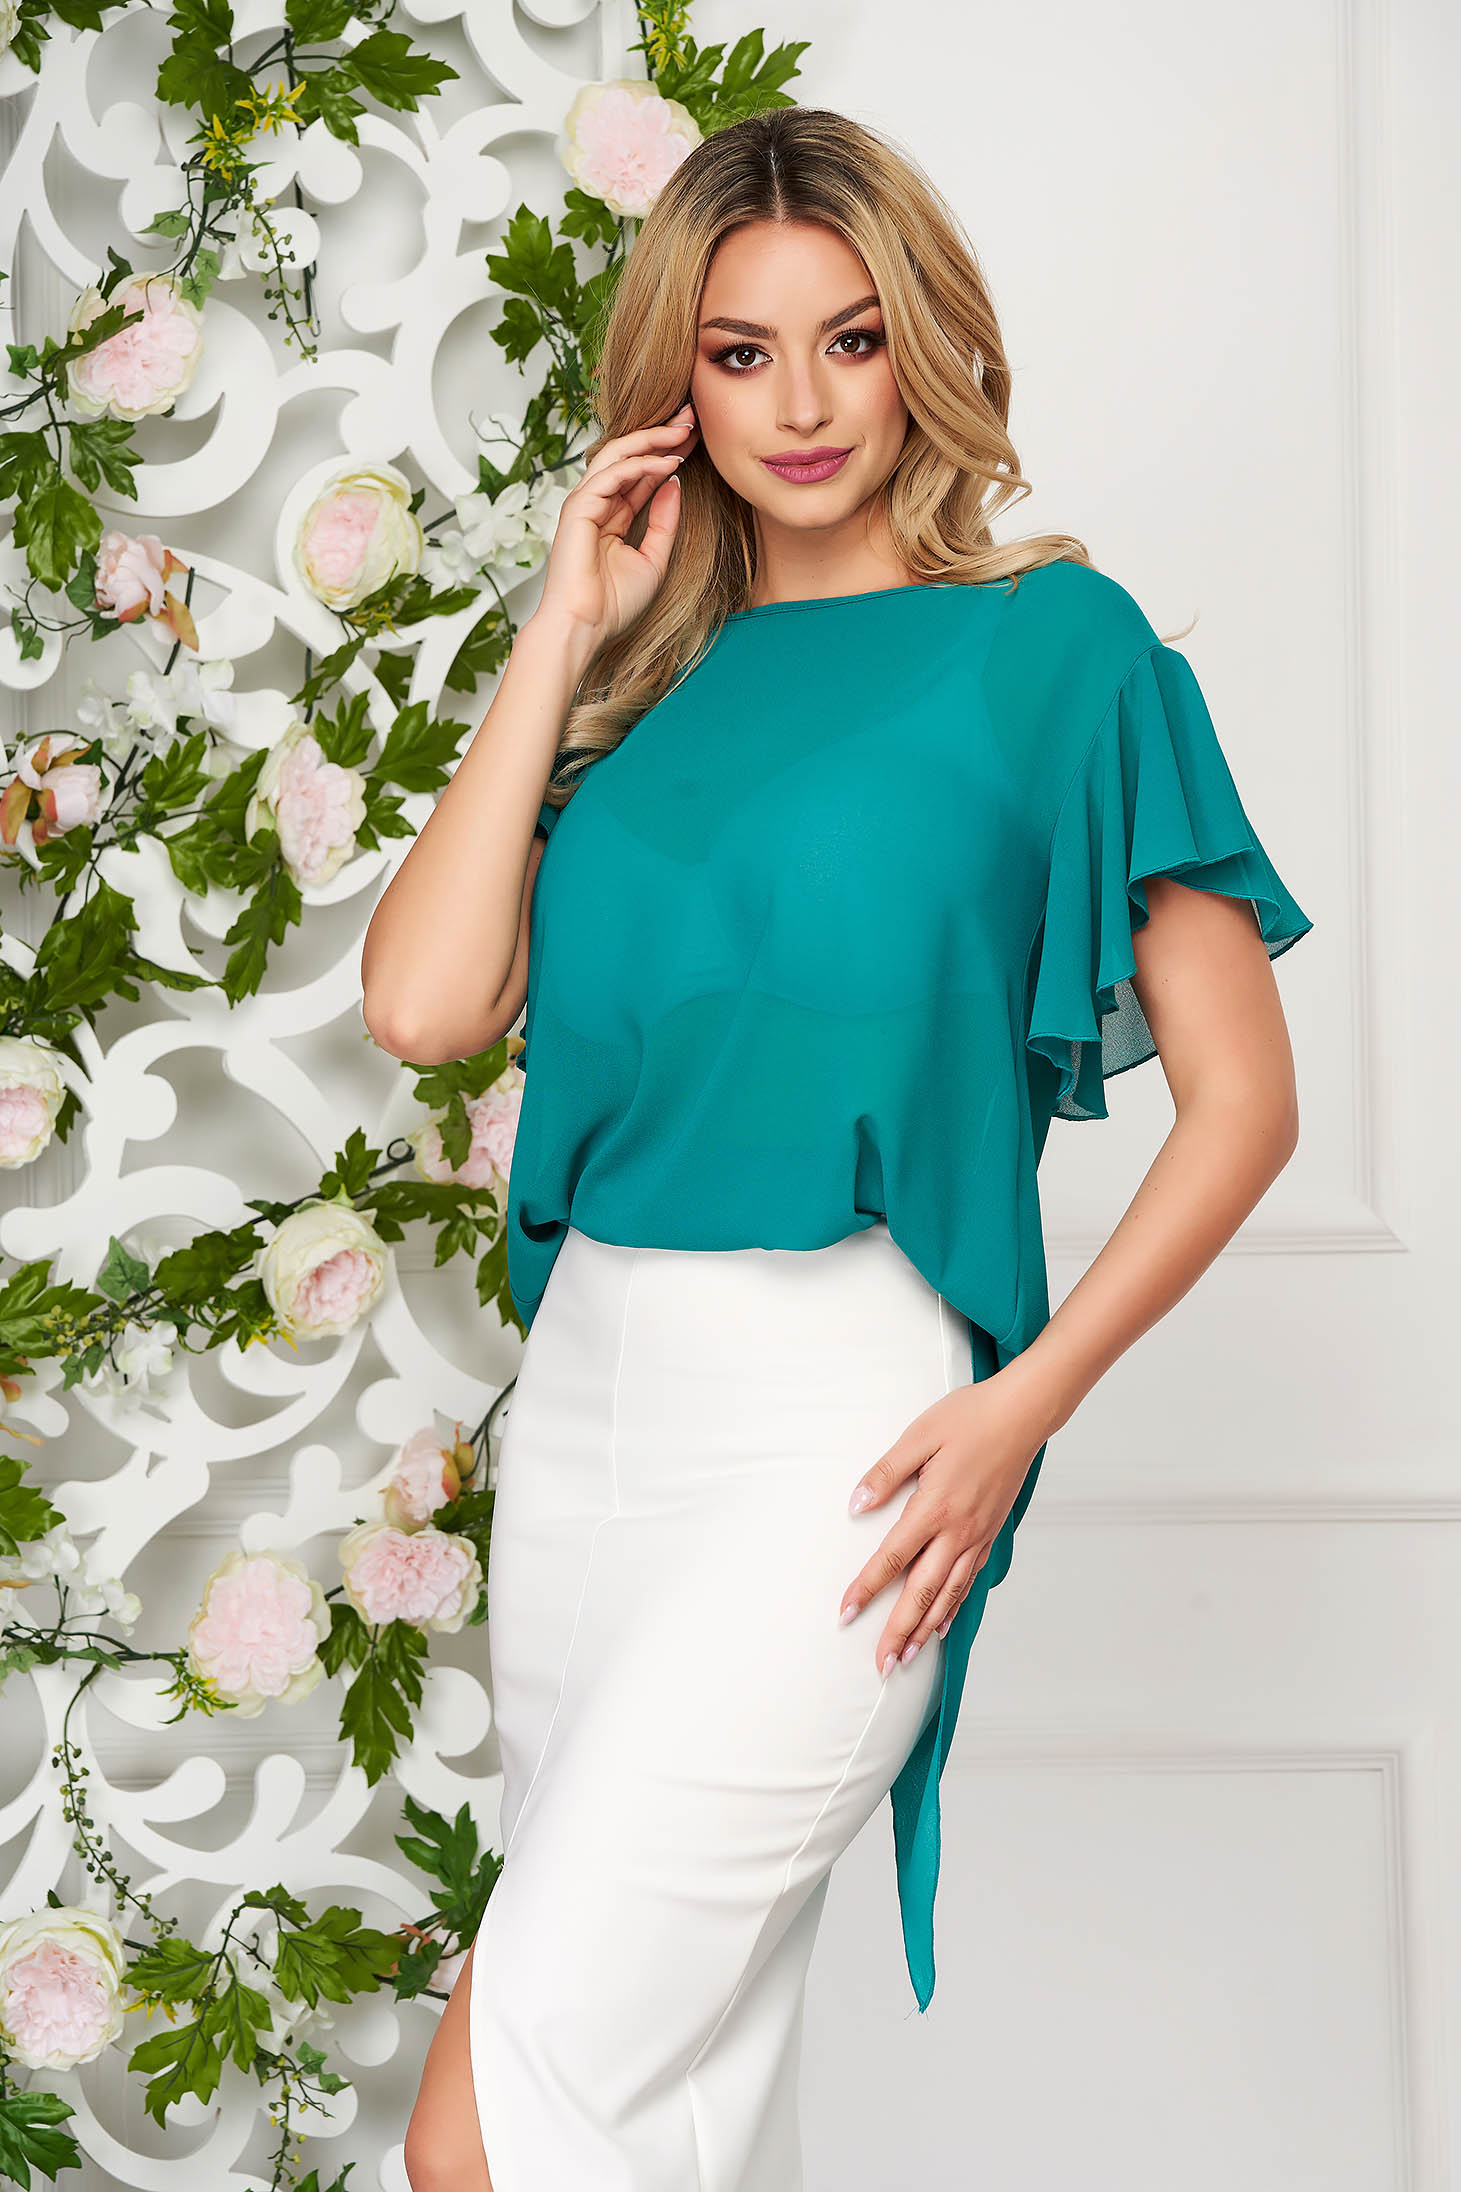 Women`s blouse StarShinerS green elegant from veil fabric flared short sleeve with ruffle details